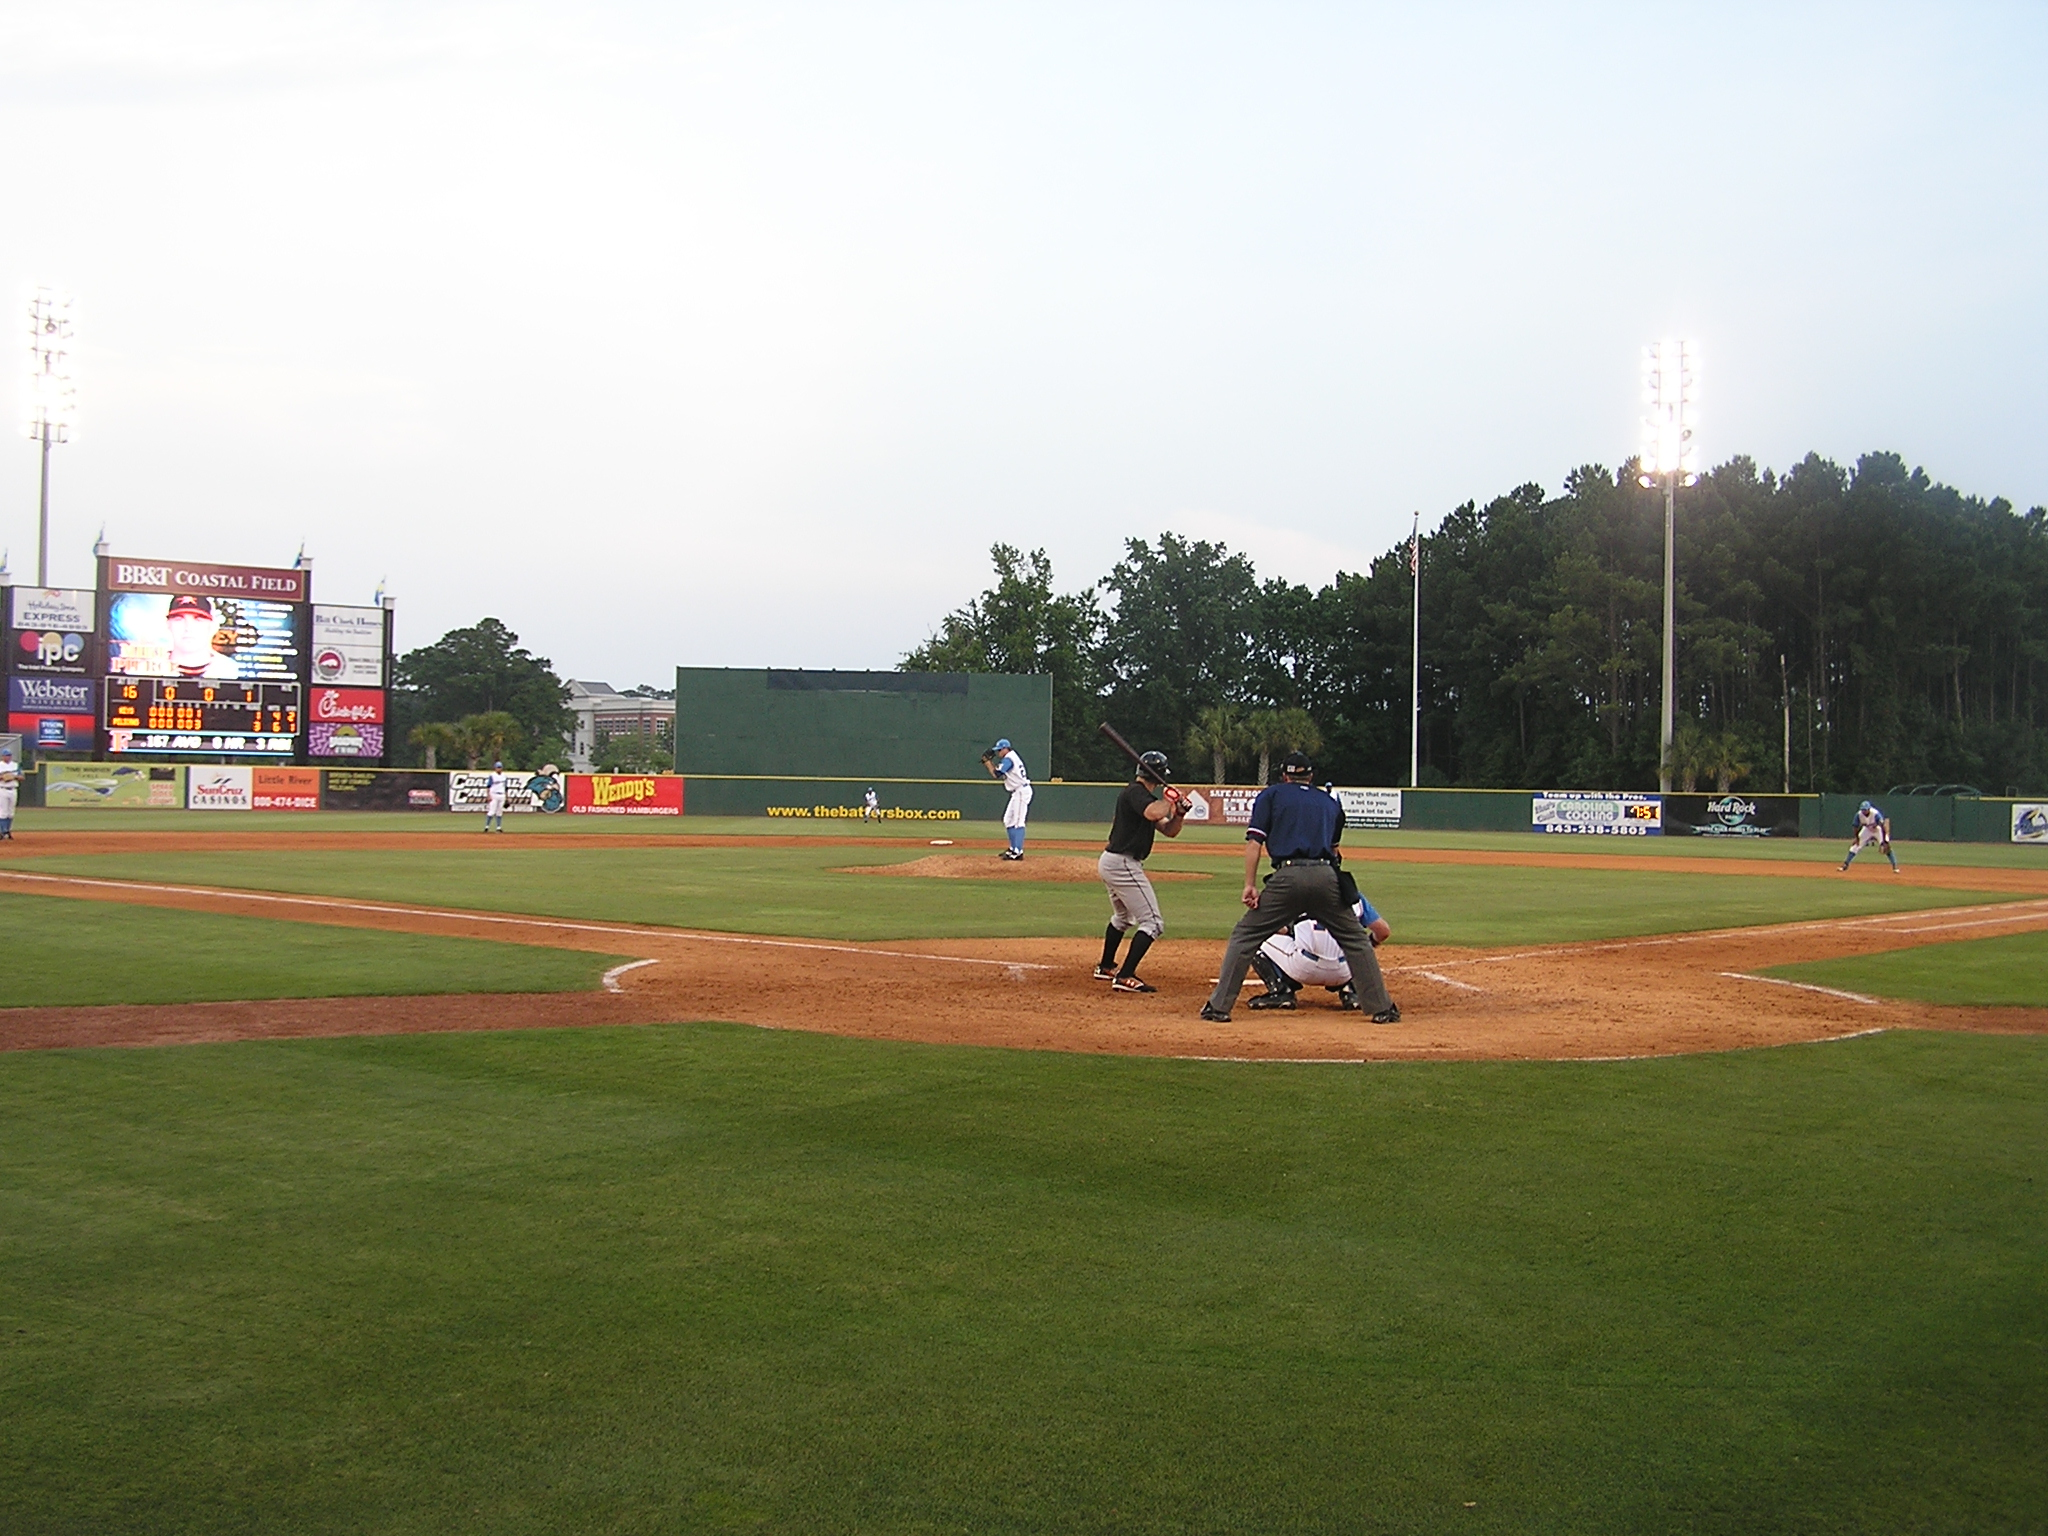 From behind Home Plate - BB&T Coastal Field